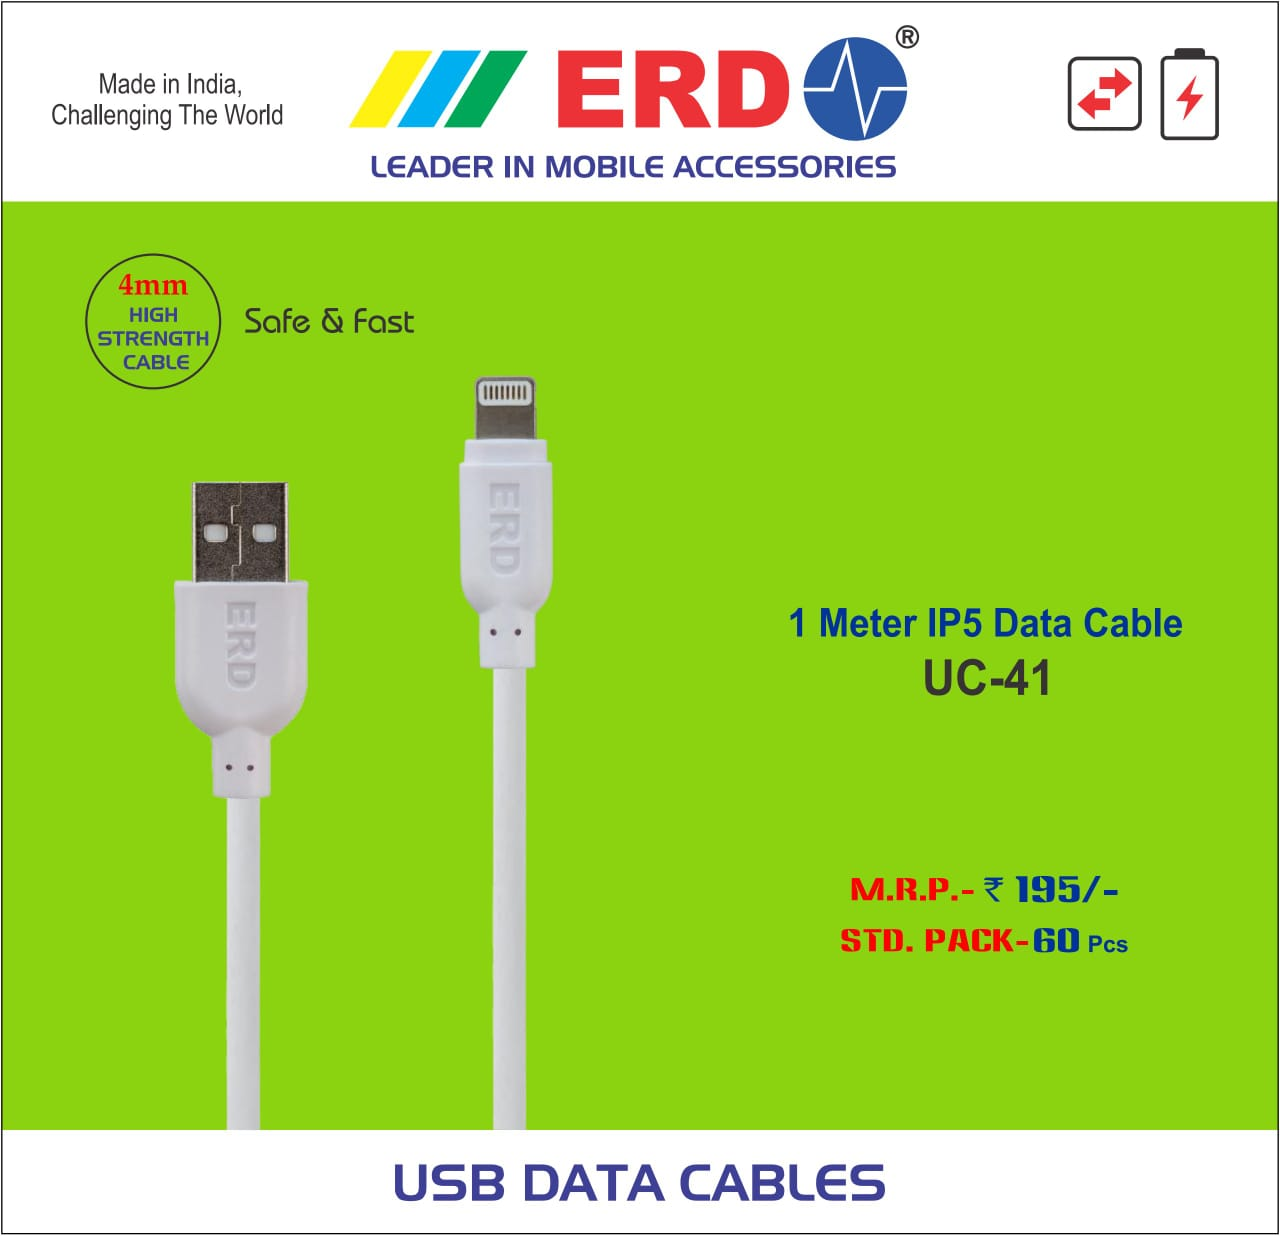 ERD USB DATA CABLES std pack 60 pics